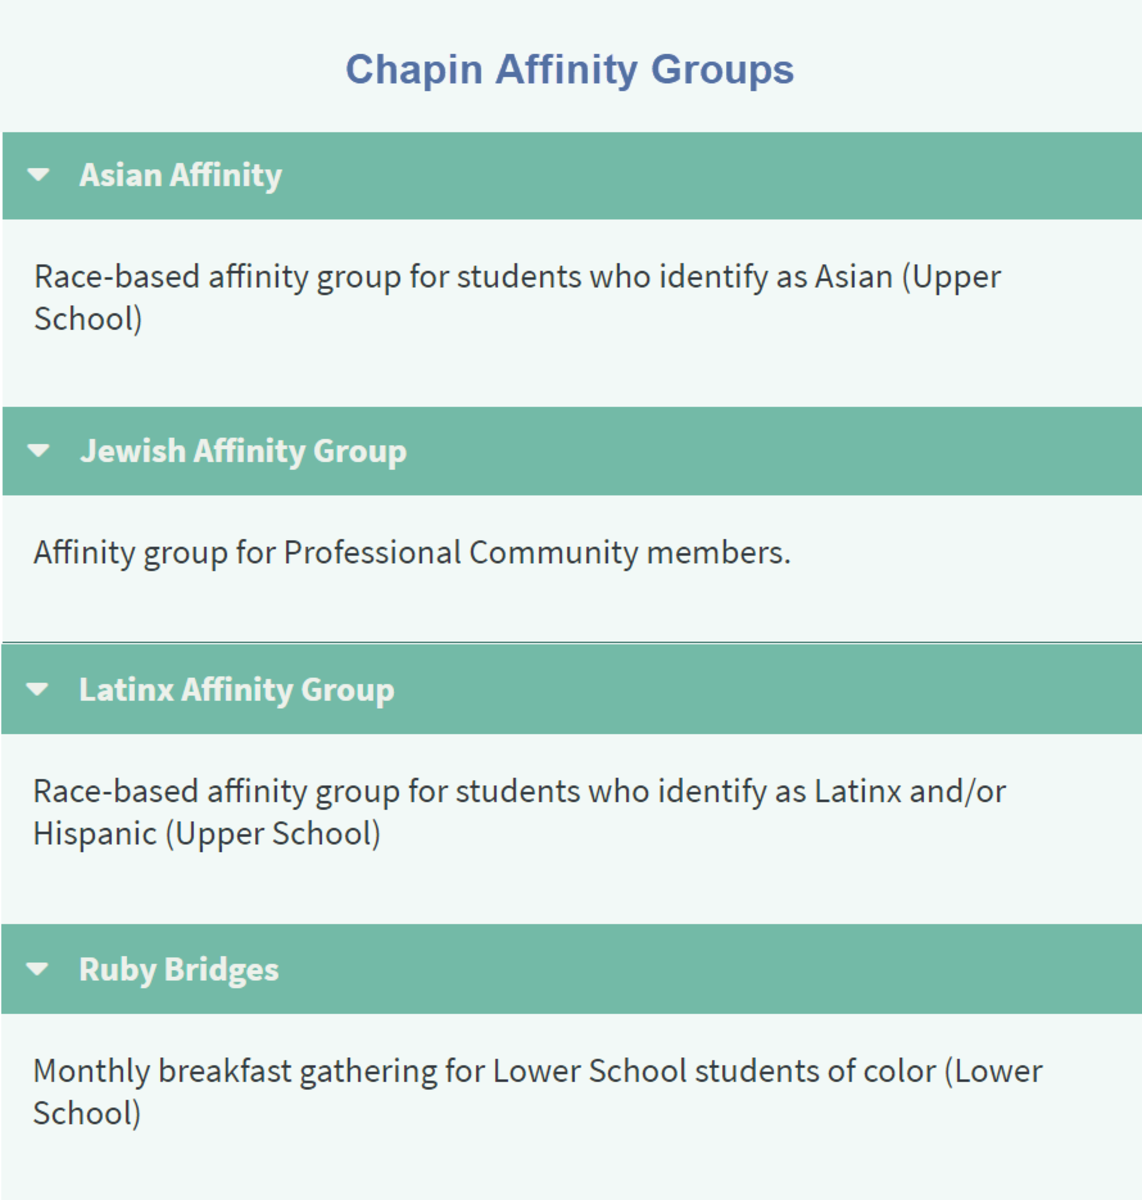 Chapin Affinity Groups